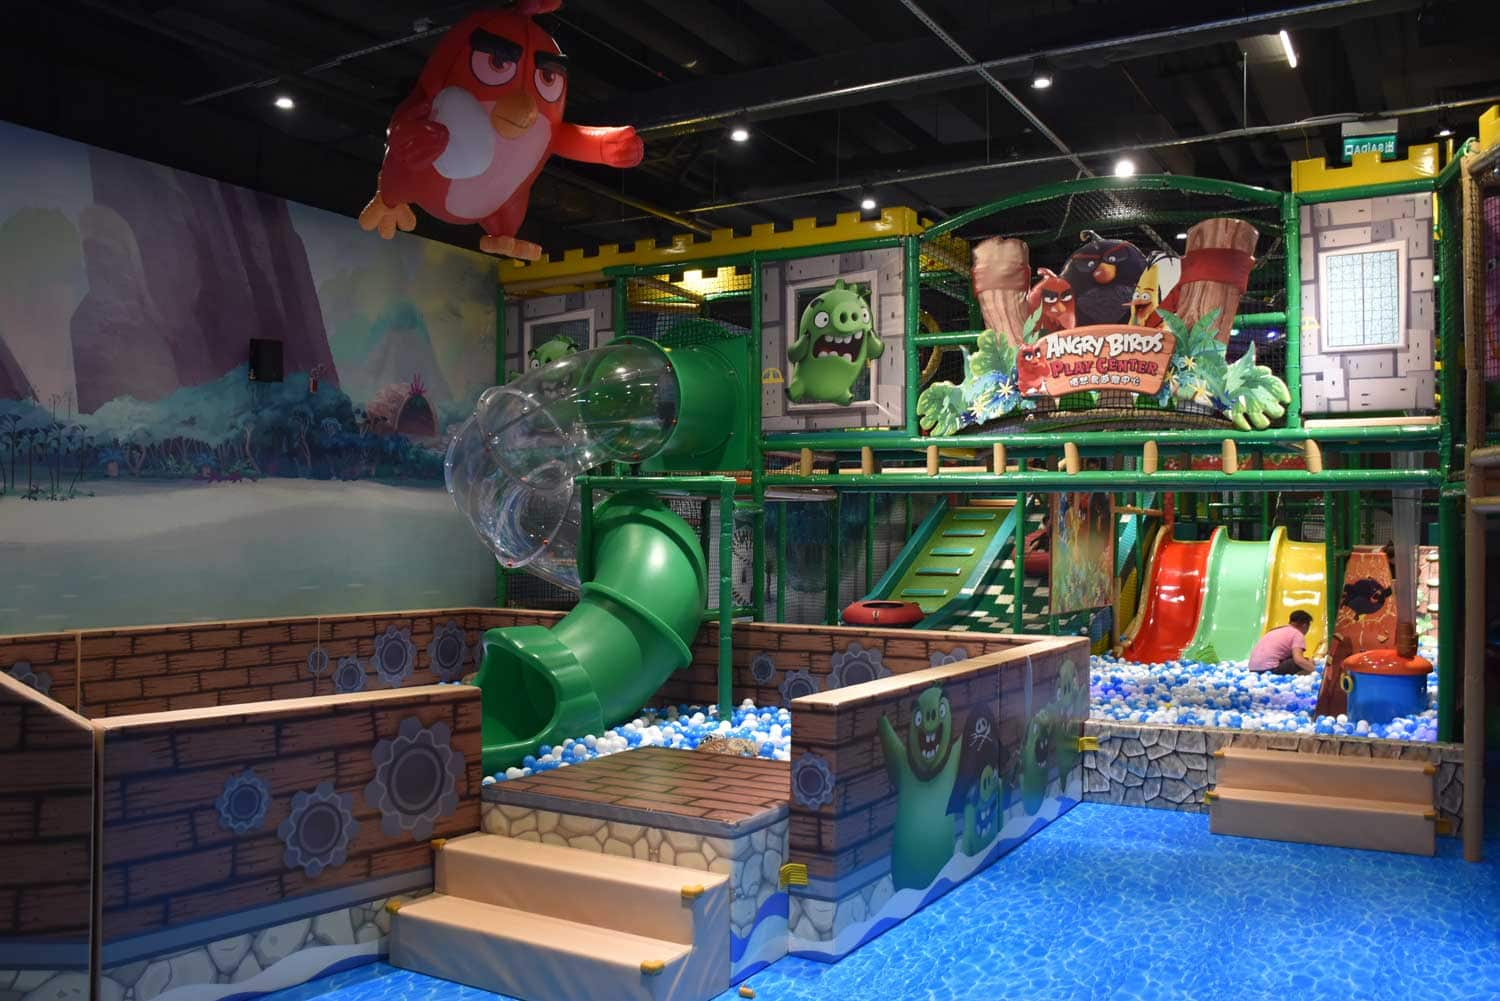 Sofitel Macau Angry Birds Play Center